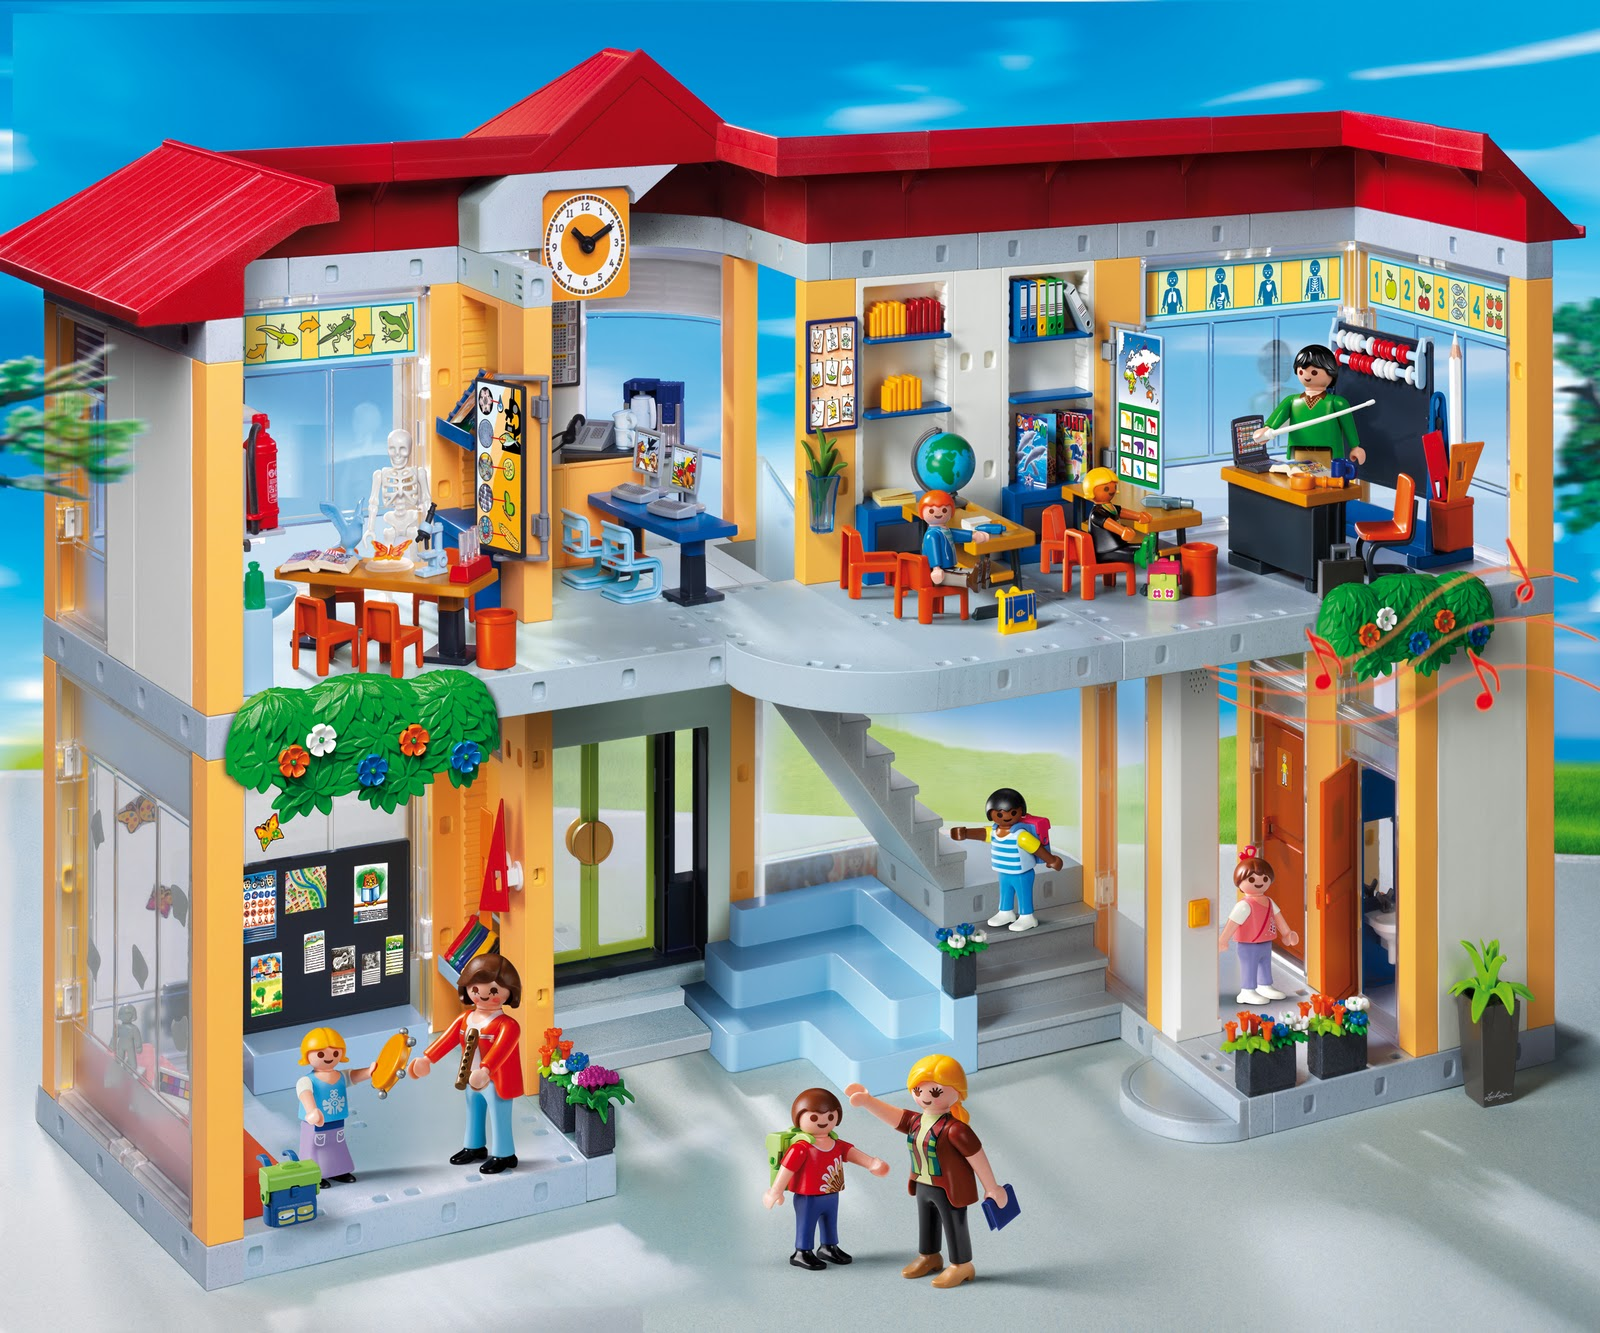 The grandma chronicles playmobil sets make holiday gifts - Construire une maison playmobil ...